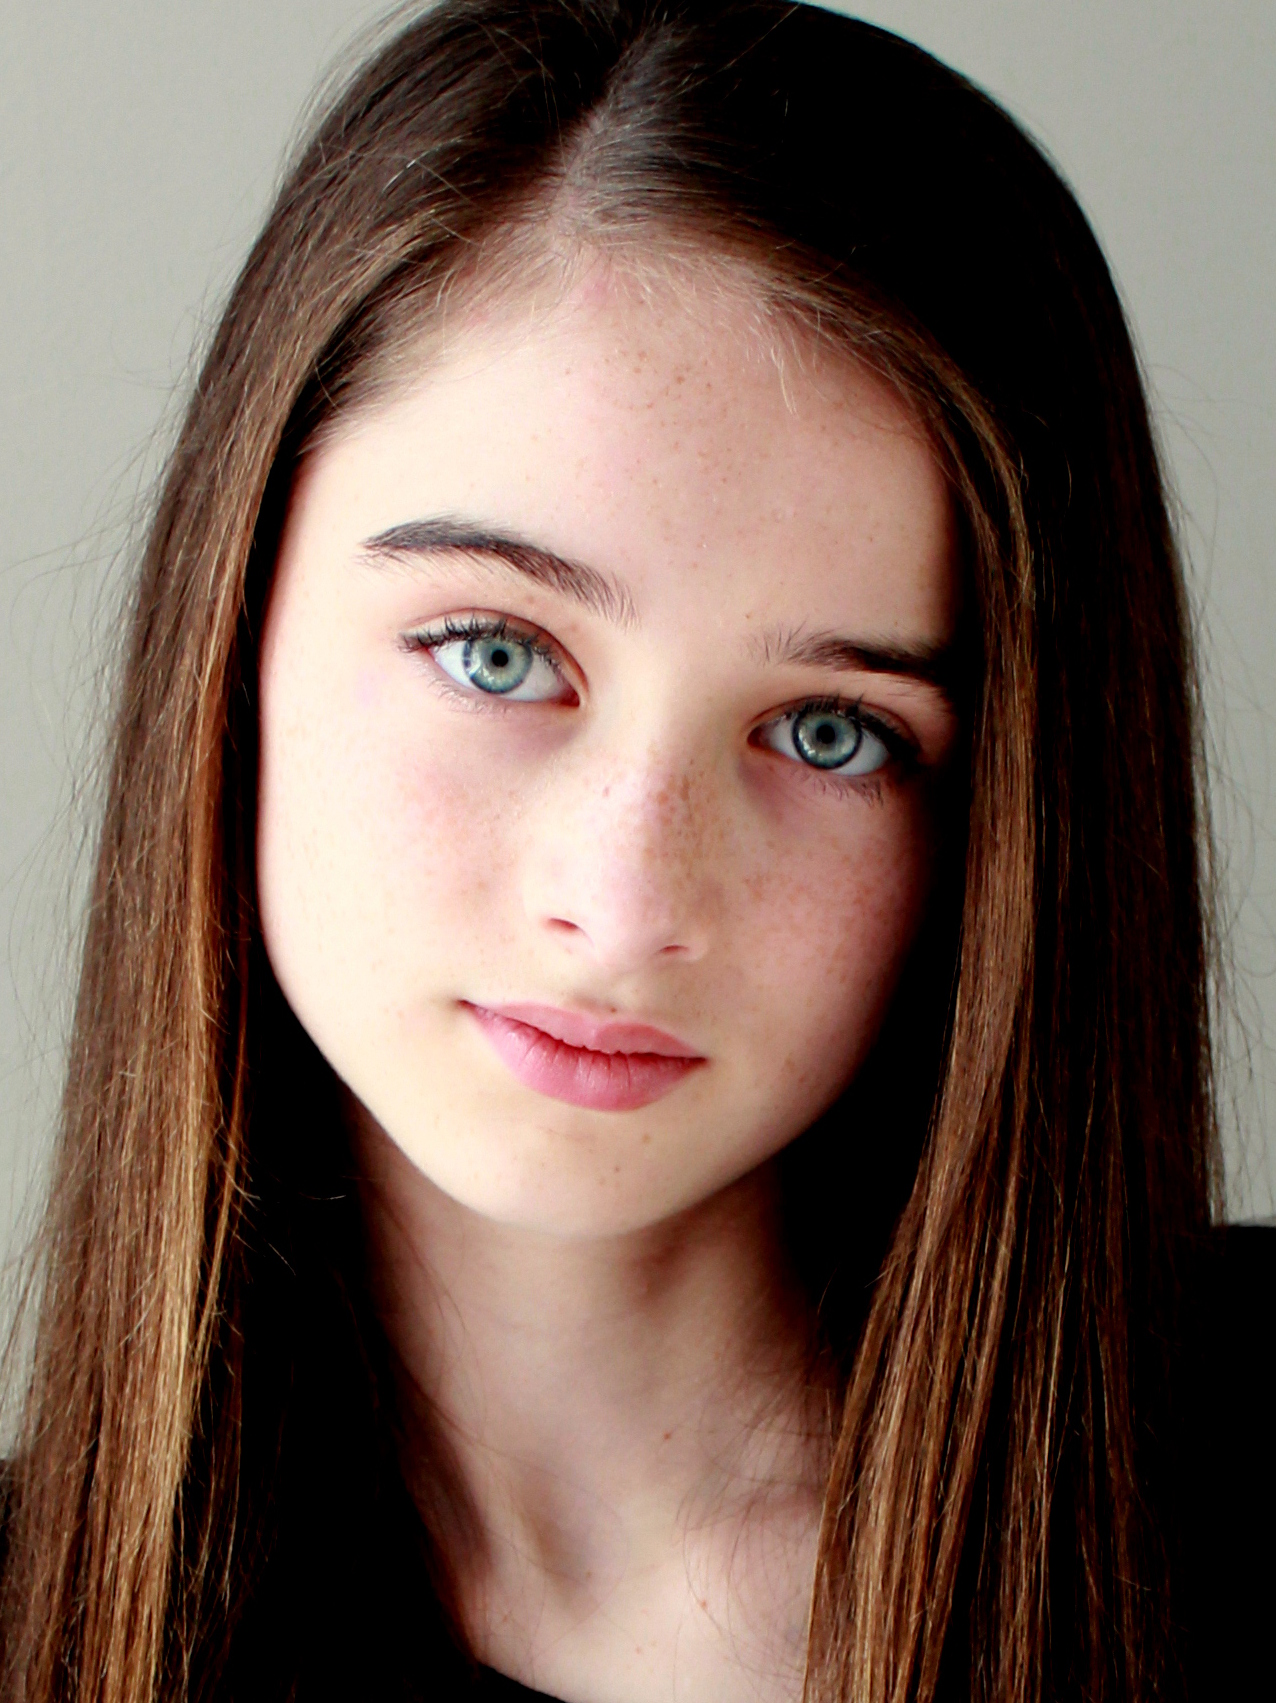 Raffey Cassidy naked (97 foto and video), Pussy, Hot, Instagram, swimsuit 2006